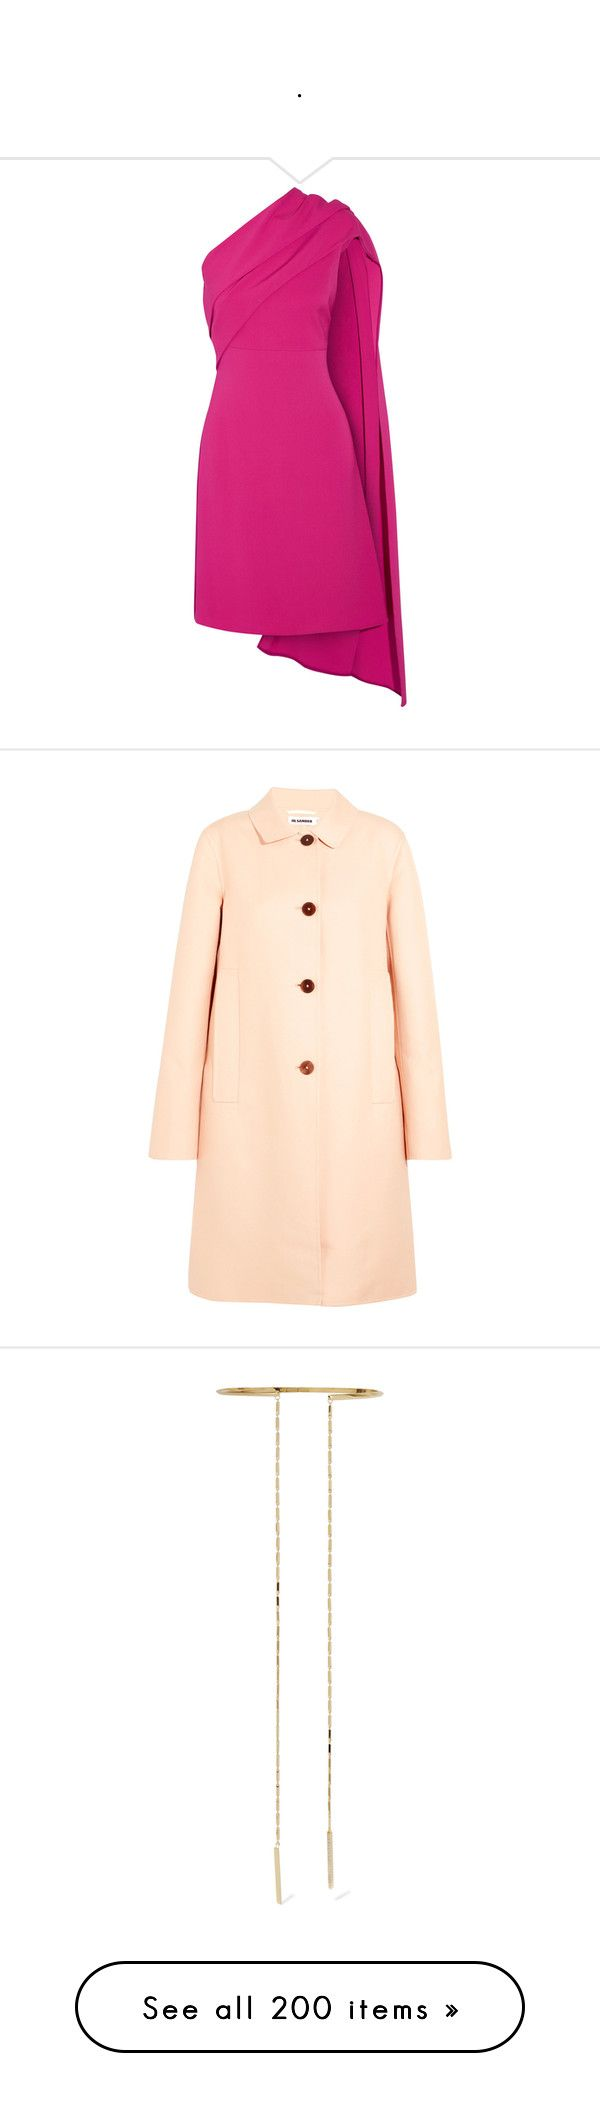 """."" by bappple ❤ liked on Polyvore featuring dresses, fuchsia, one sleeve cocktail dress, fuschia dress, special occasion dresses, fuchsia pink dress, one shoulder dress, outerwear, coats and pastel pink"